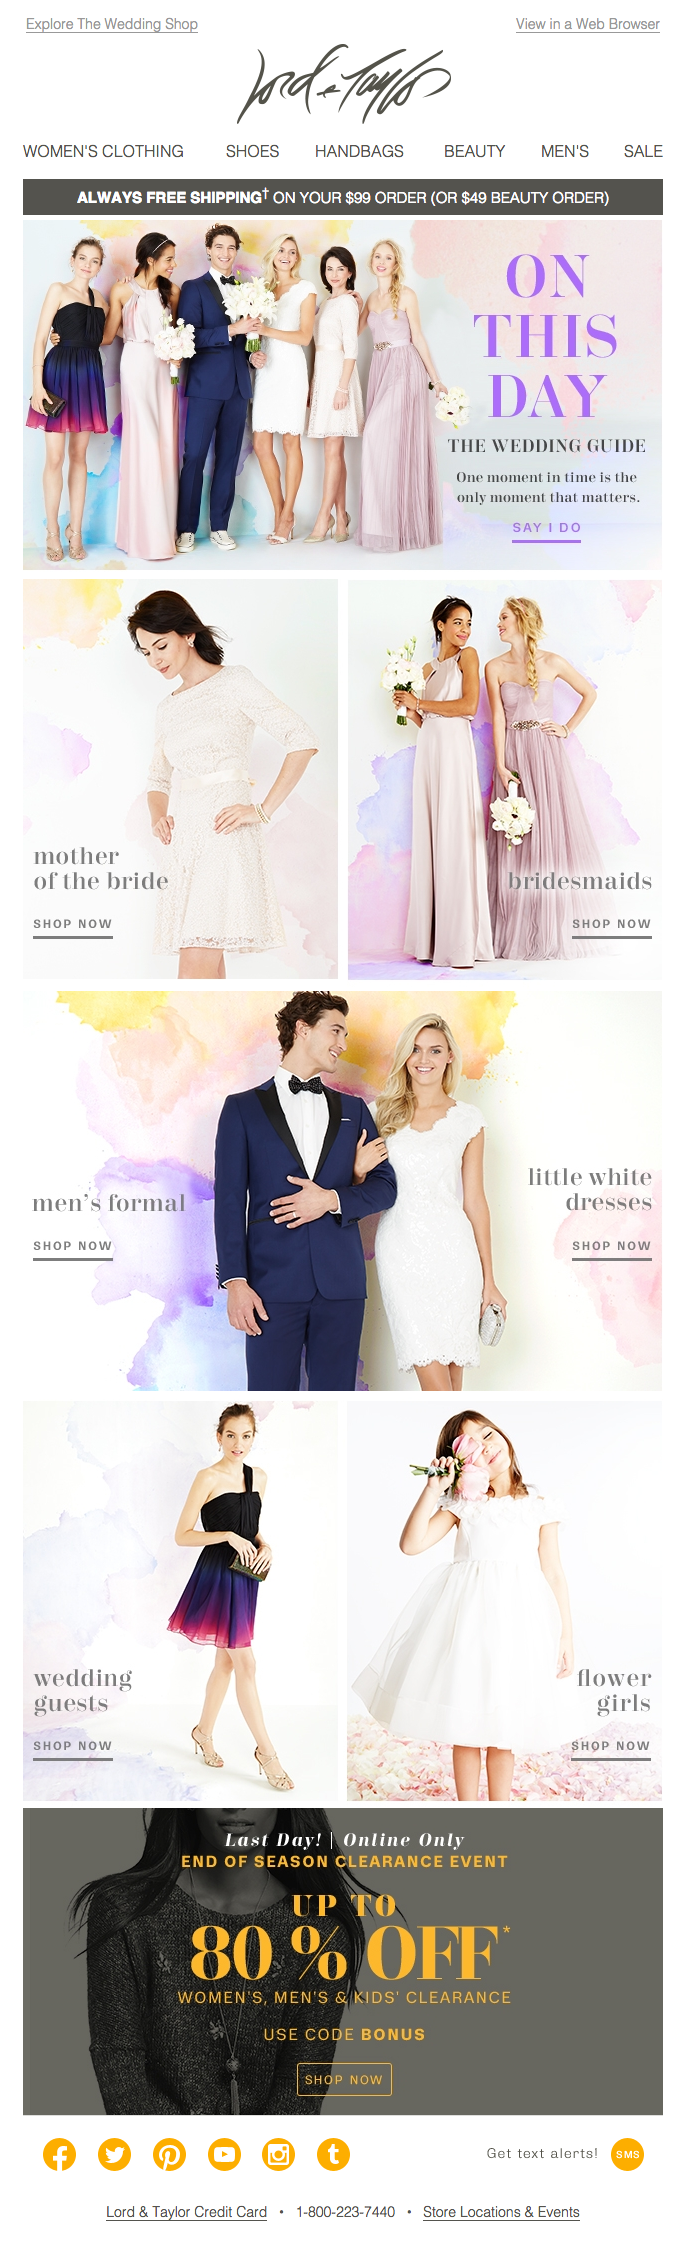 Lord & Taylor wedding email 2015